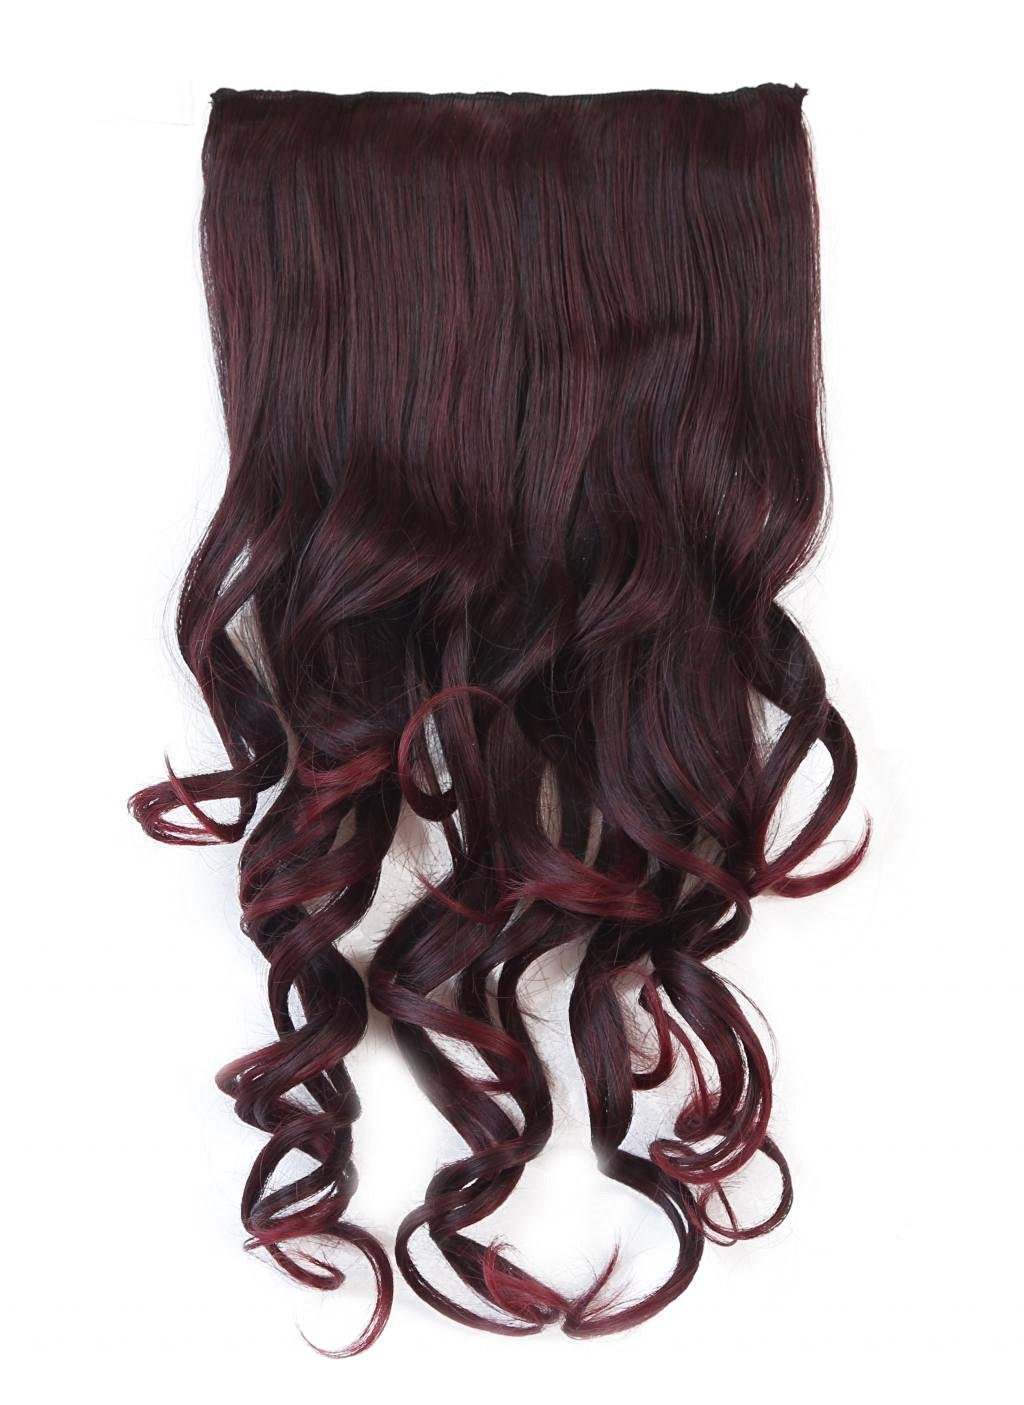 LOUISE MAELYS One Piece Long Curly Hair Extension Wavy Wig 5 Clips Hairpiece Wine Red